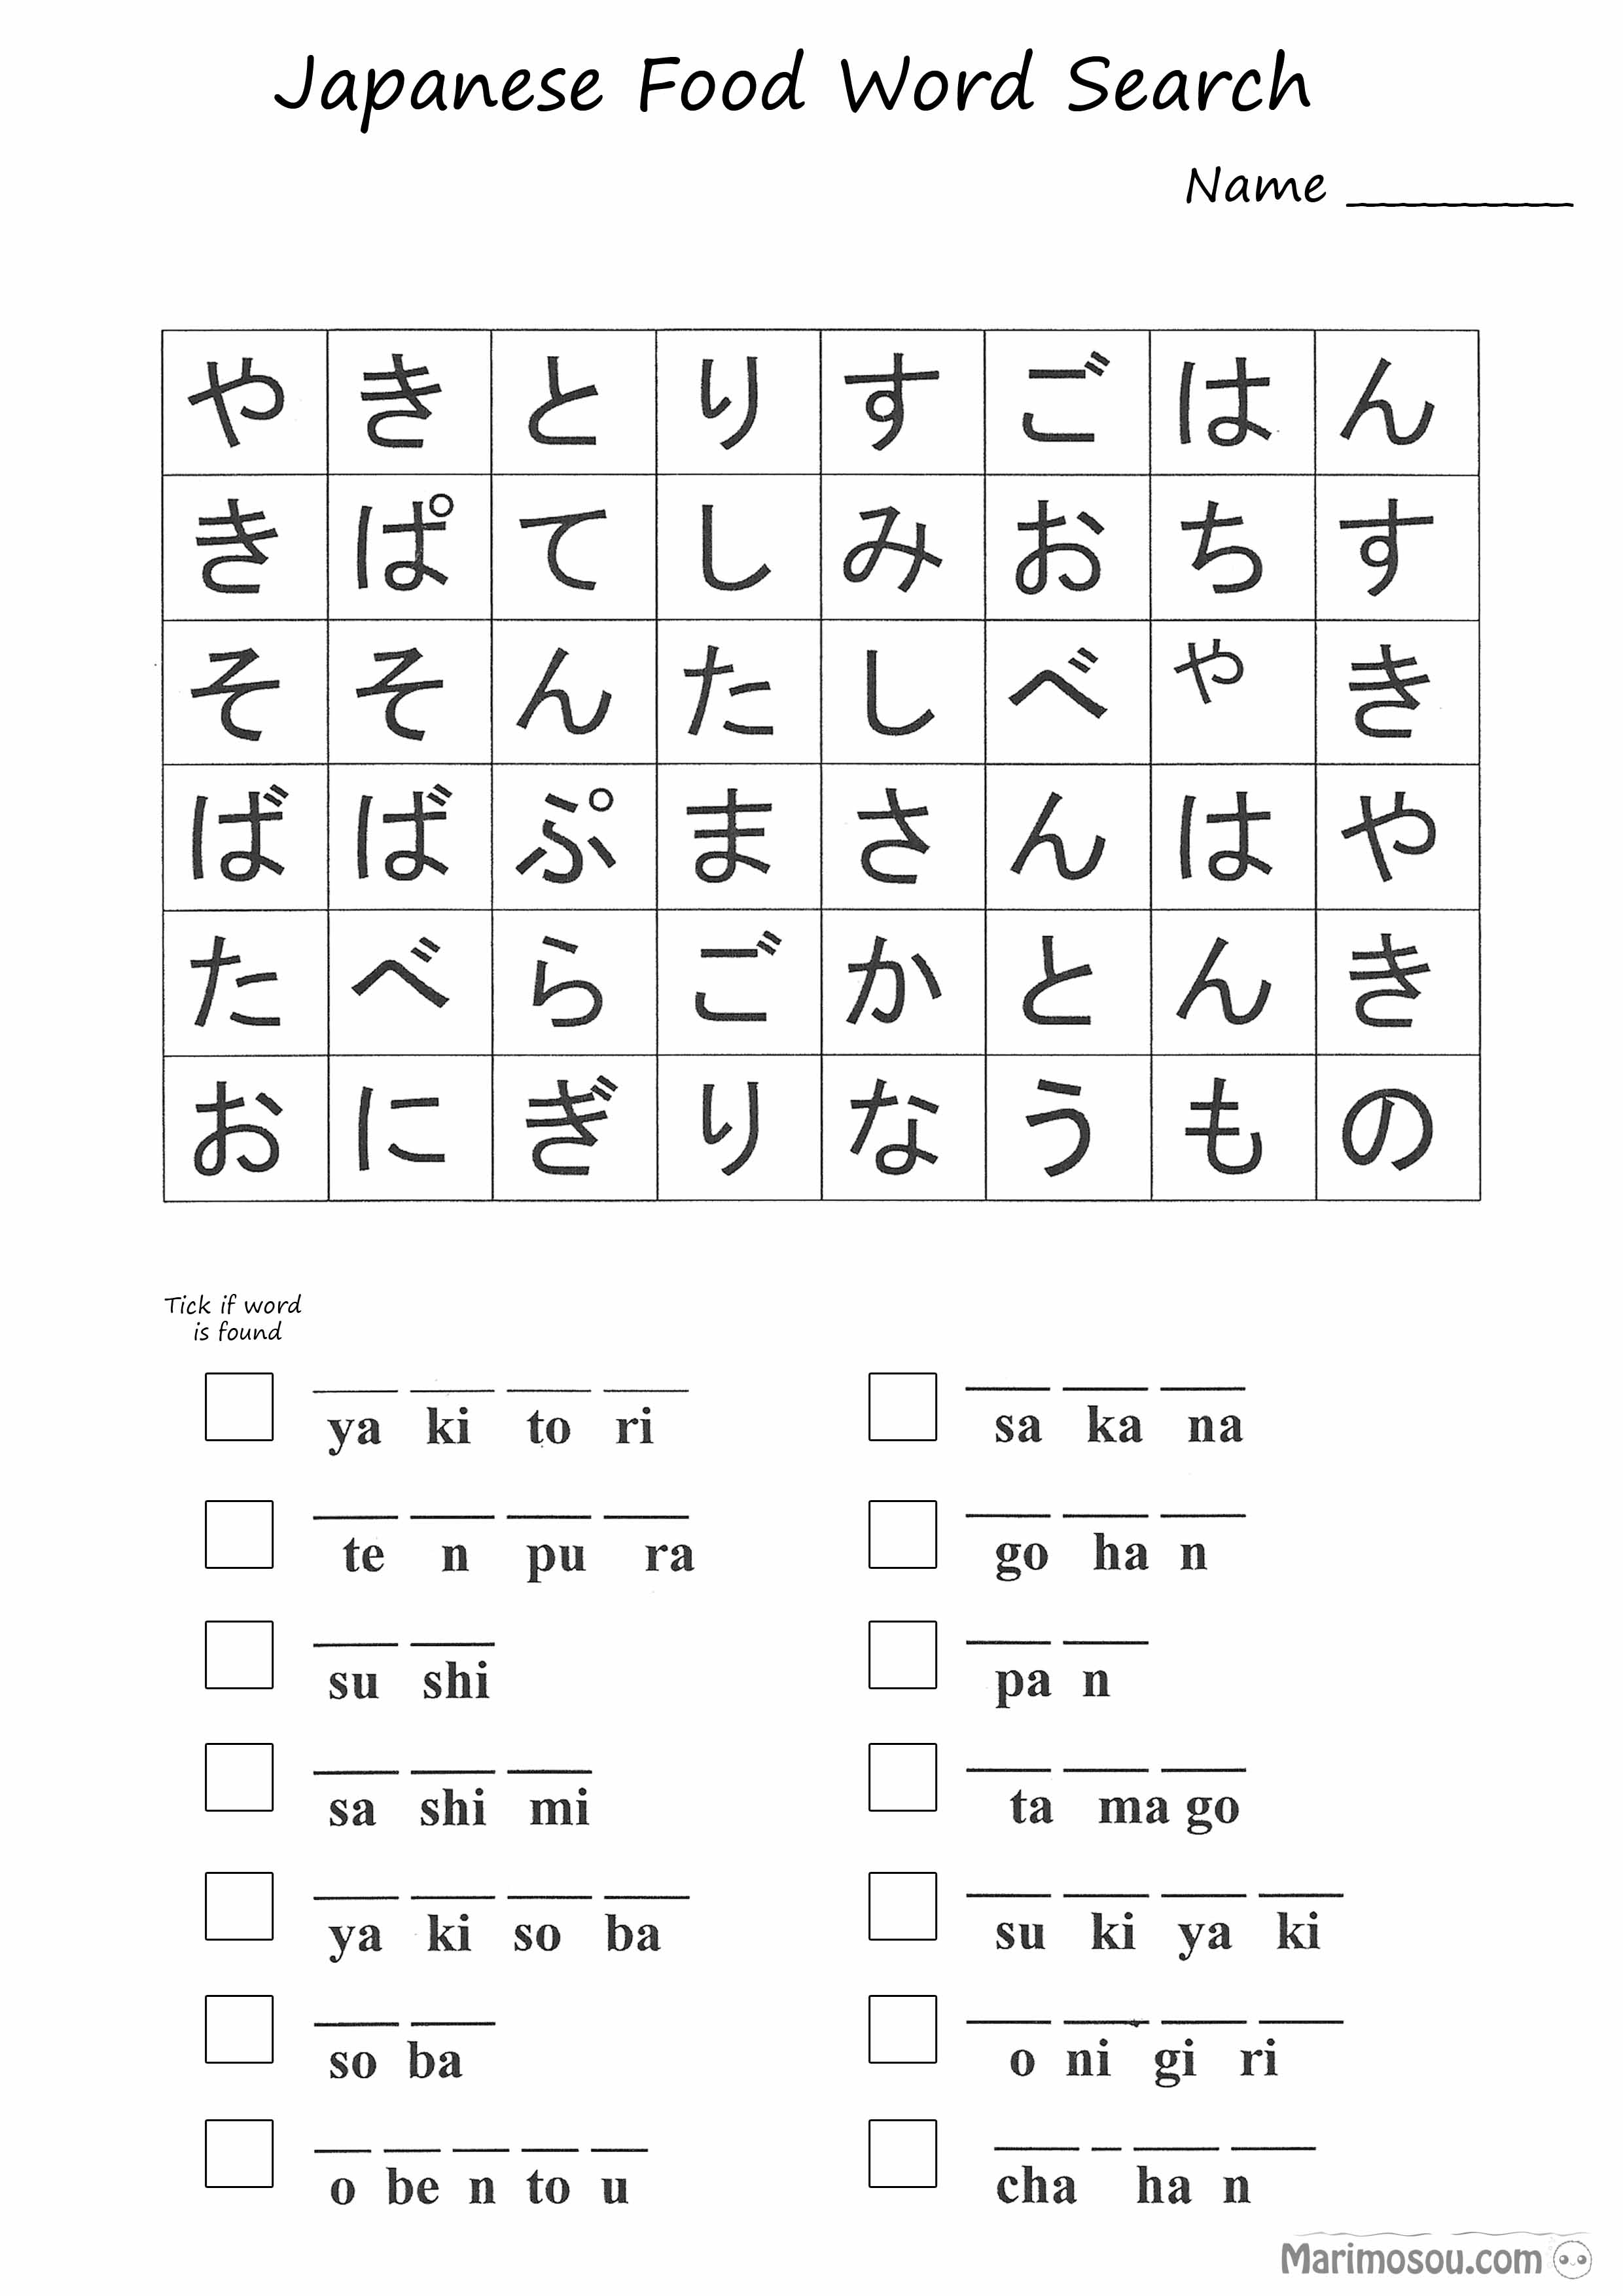 Hiragana Food Word Search Worksheet Marimosou